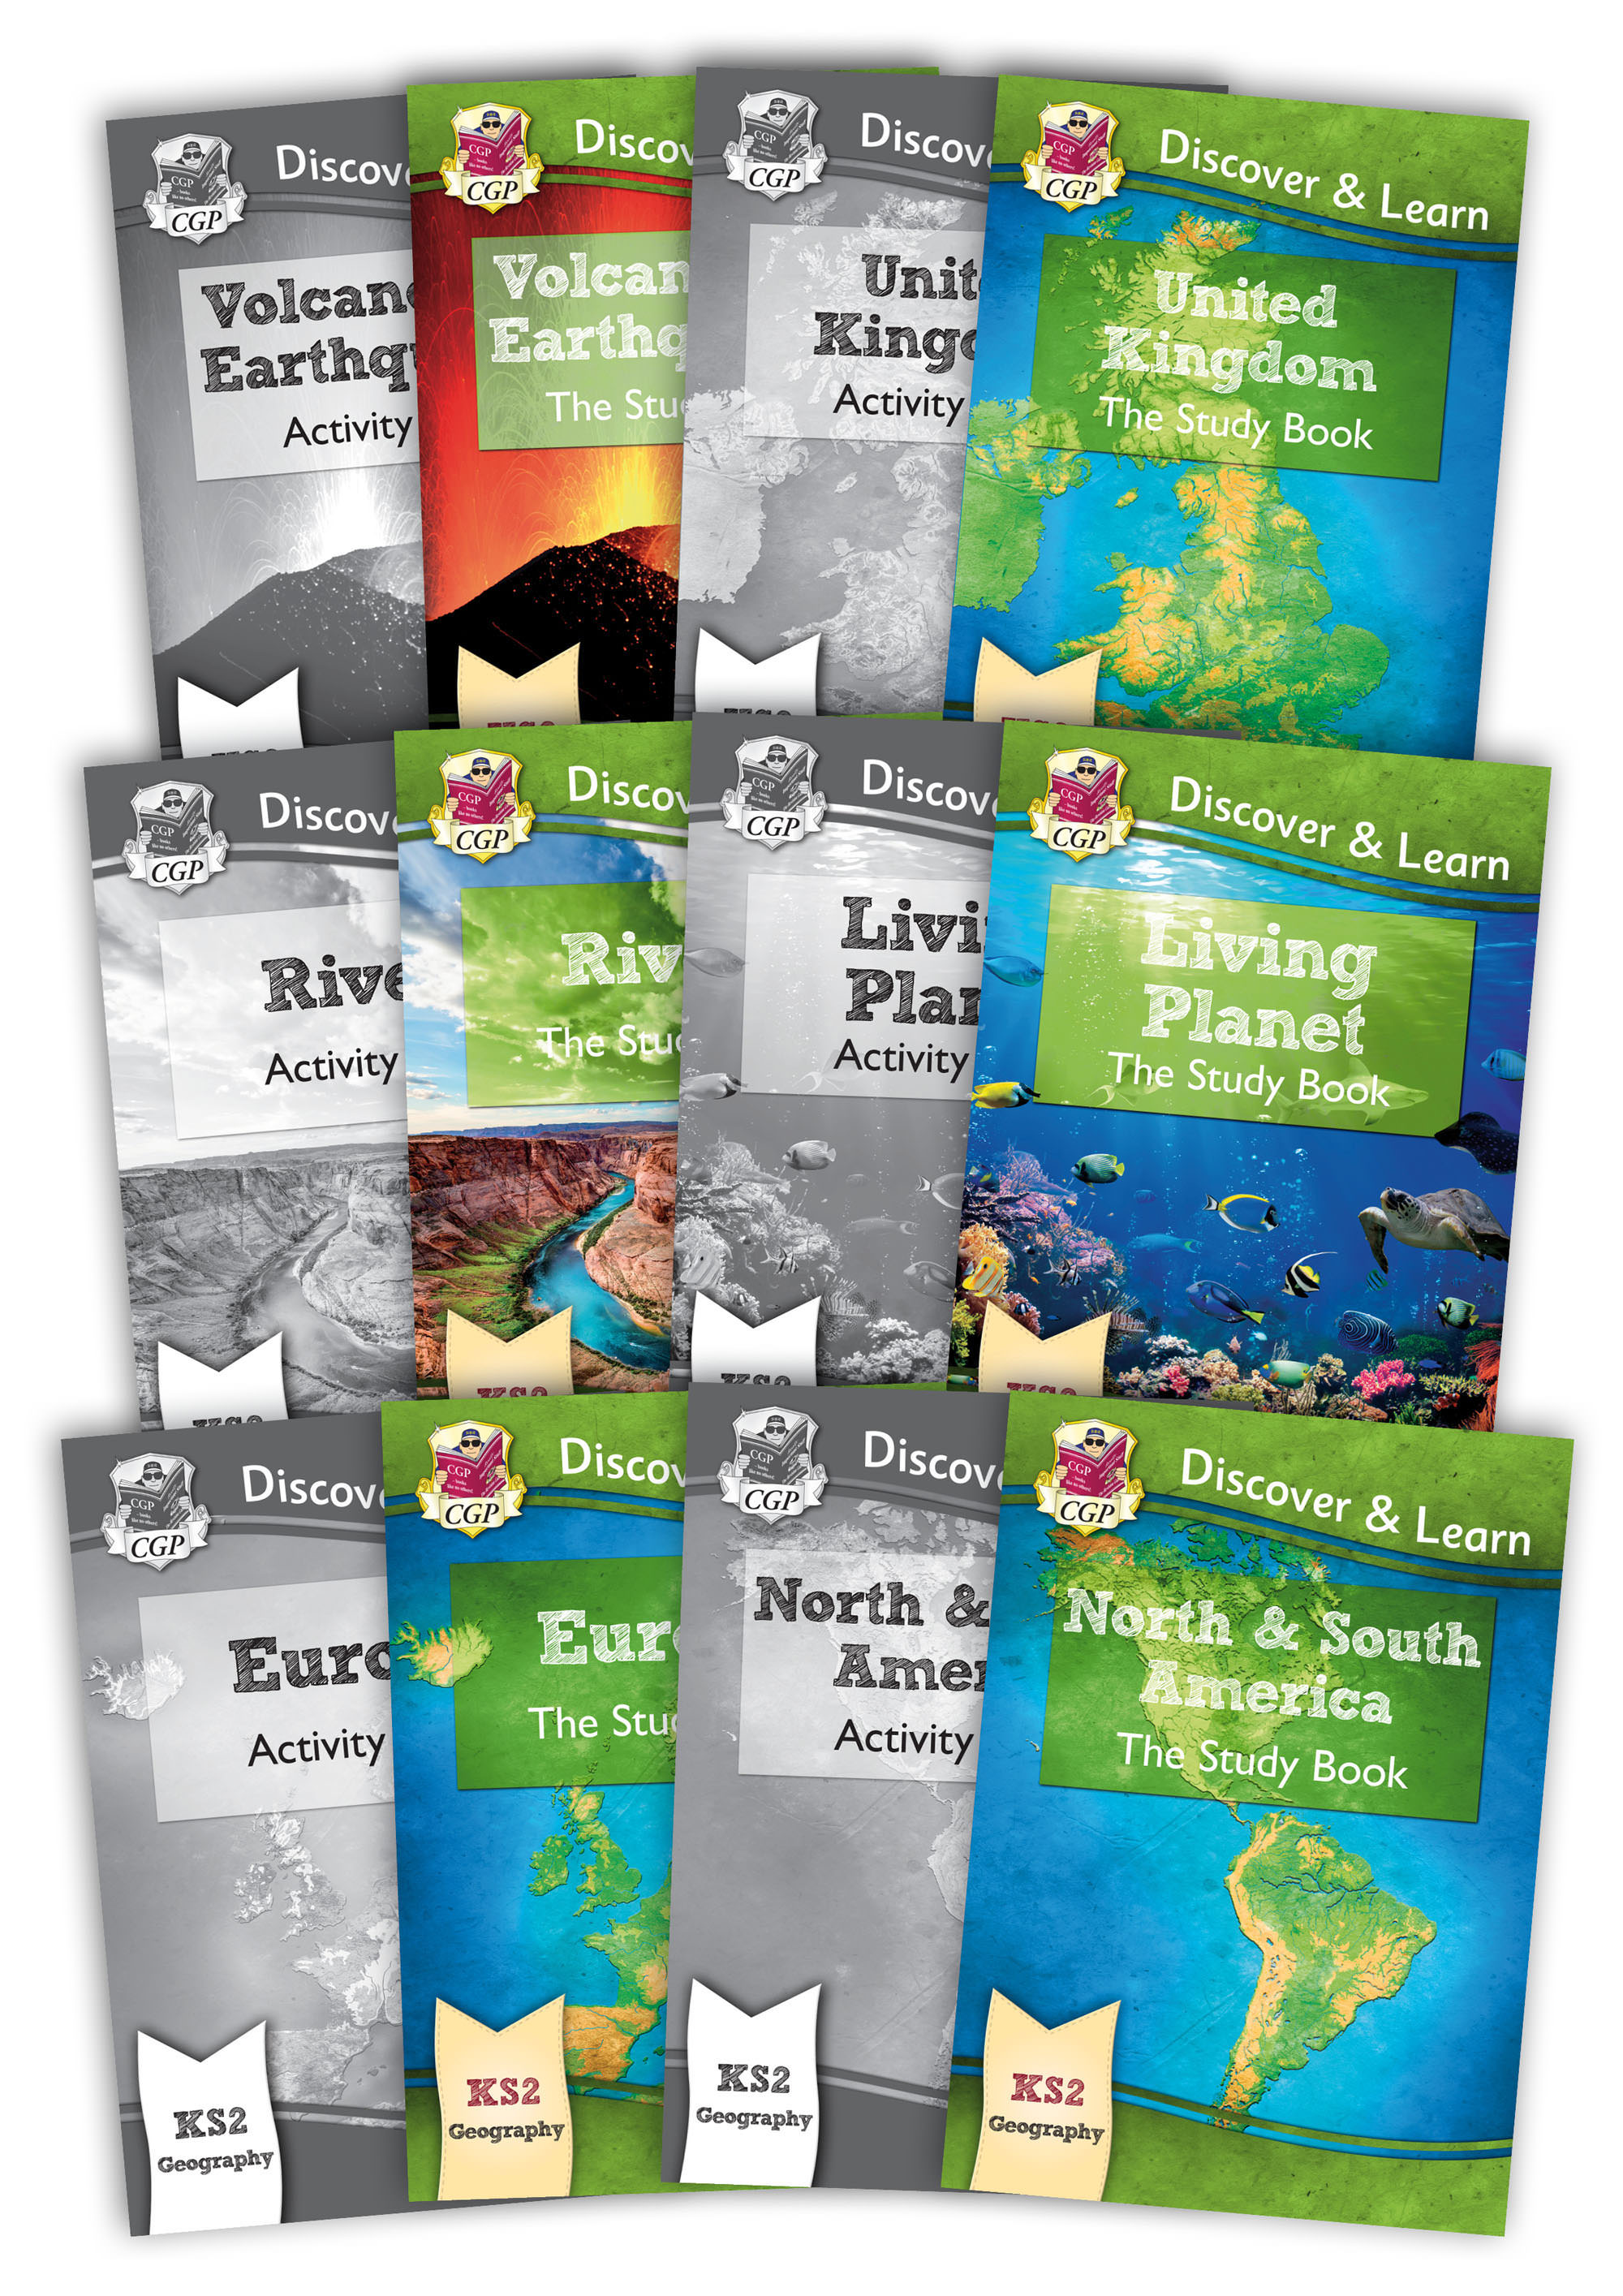 GMB21 - KS2 Geog mega bundle